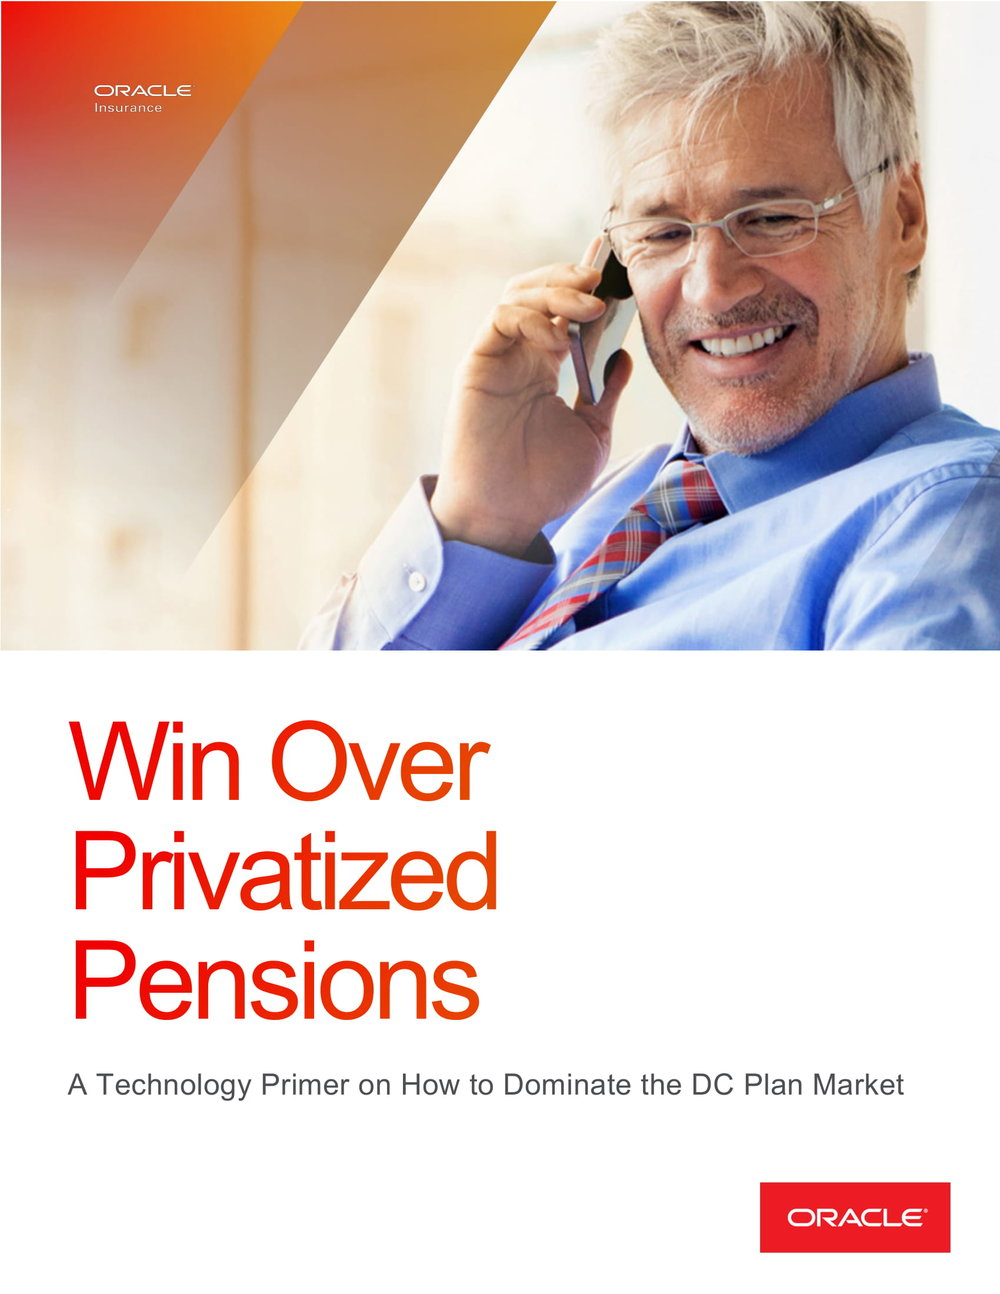 Win Over Privatized Pensions